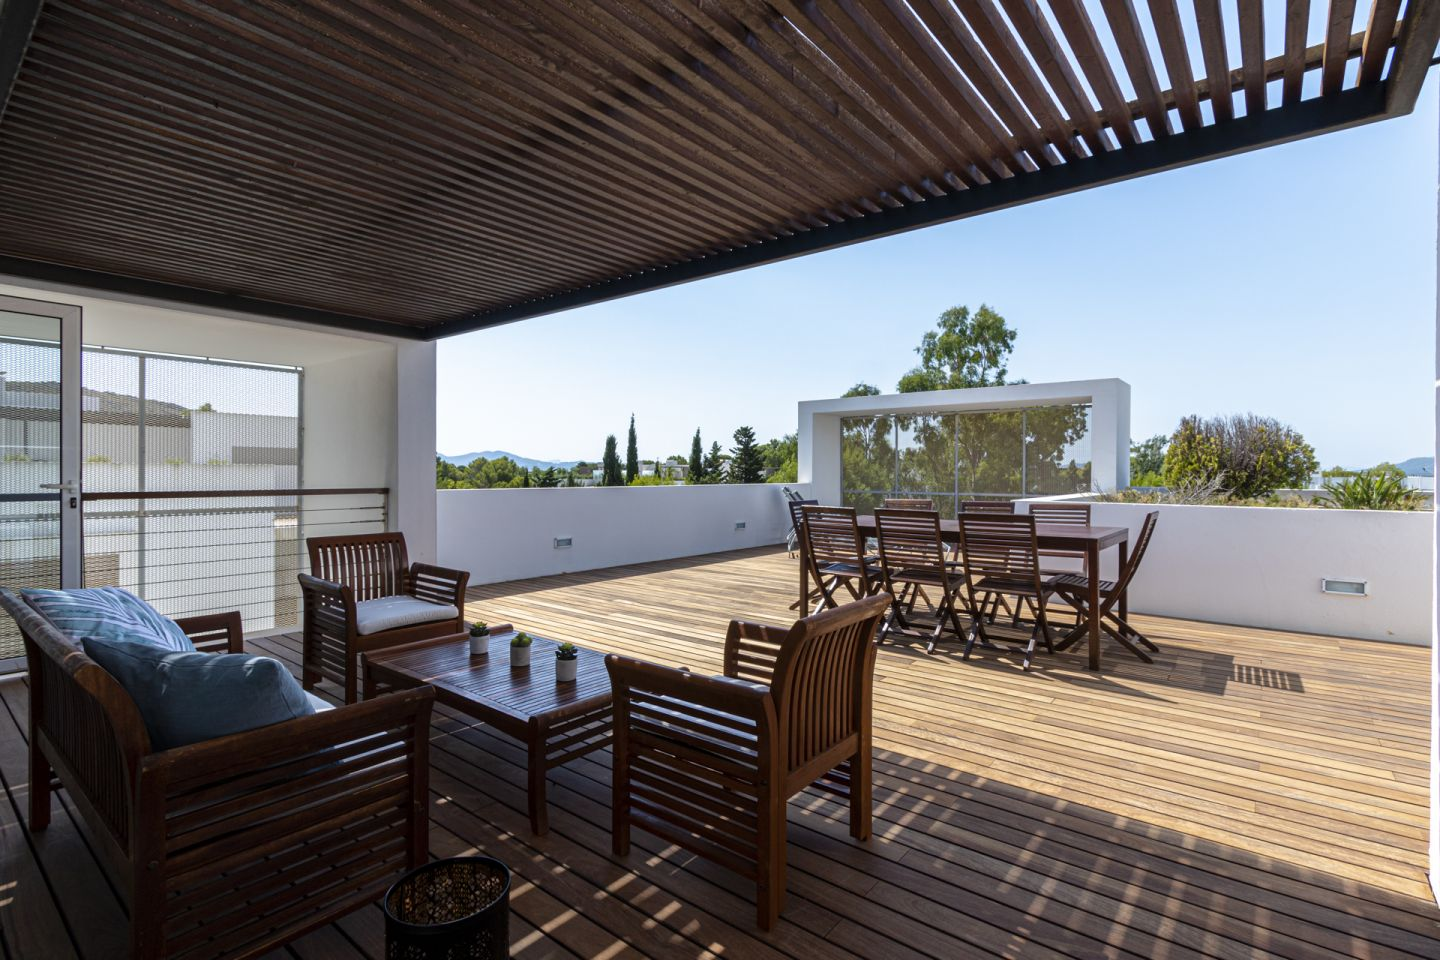 4 Bed Penthouse for sale in PUERTO POLLENSA 0